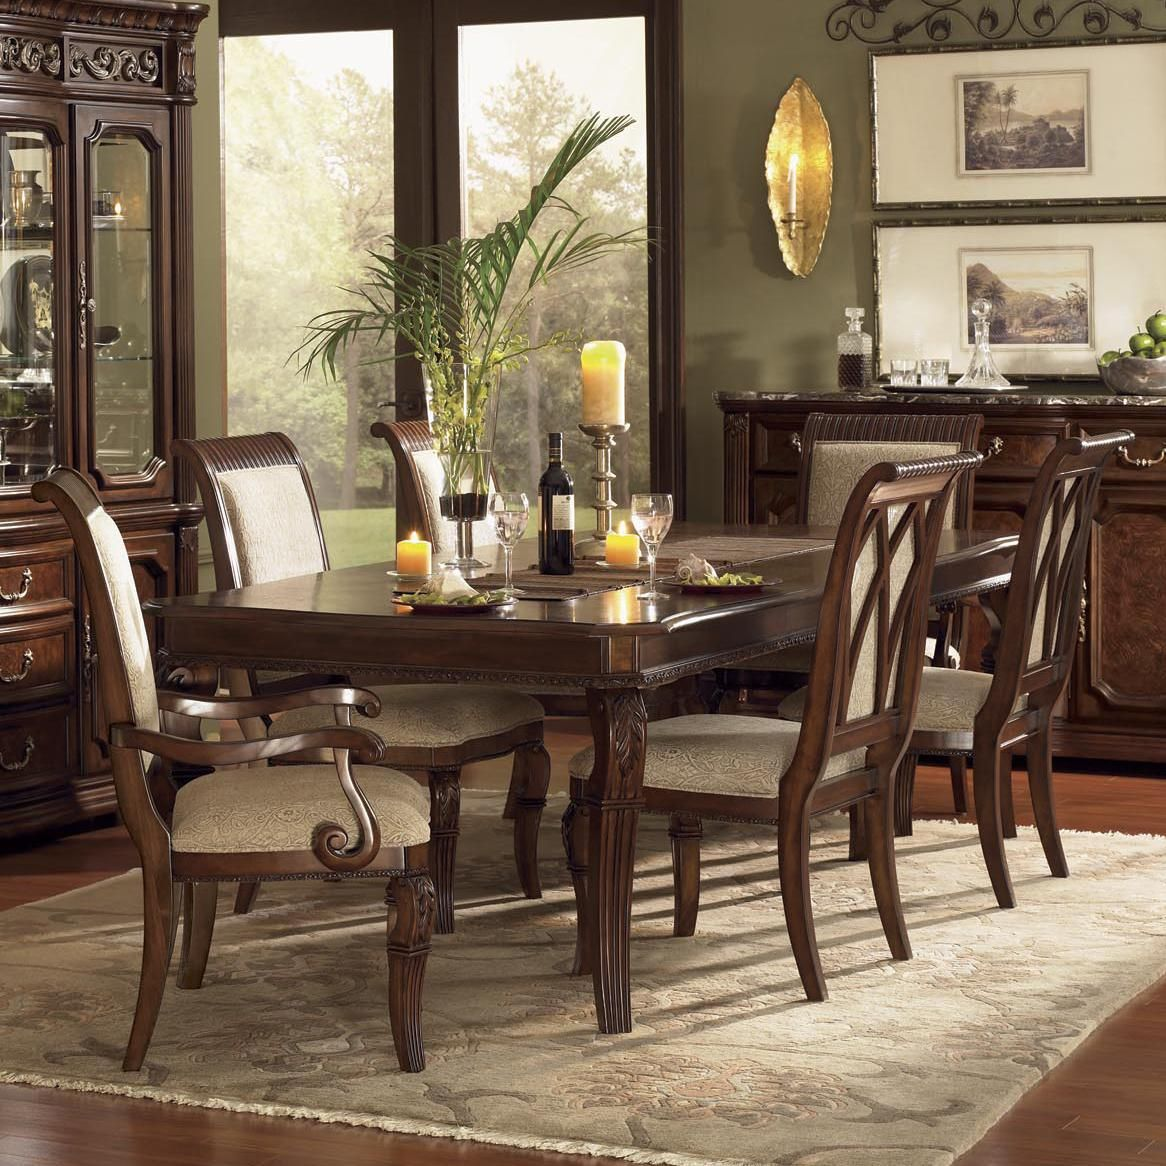 Dining Room Set With China Cabinet Granada Dining Room Set With Upholstered Chairs By Wynwood